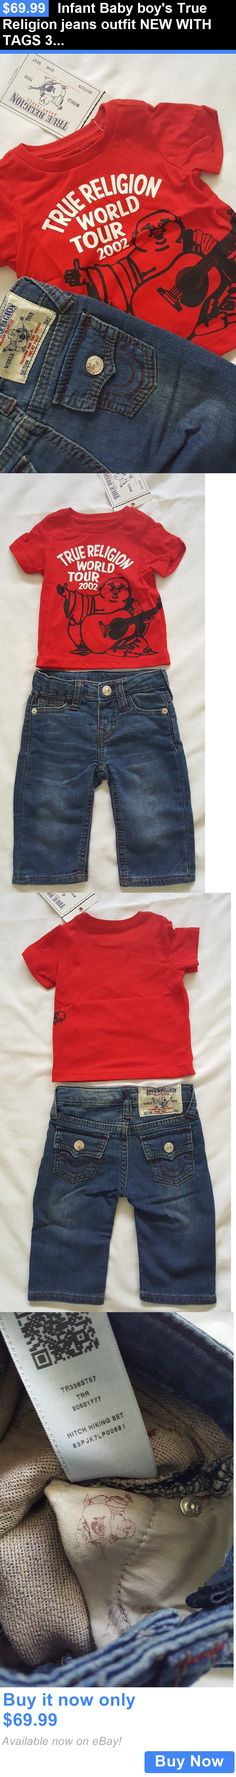 Baby Boys Clothing And Accessories: Infant Baby Boys True Religion Jeans Outfit New With Tags 3 6 9 12 18 24 Months BUY IT NOW ONLY: $69.99